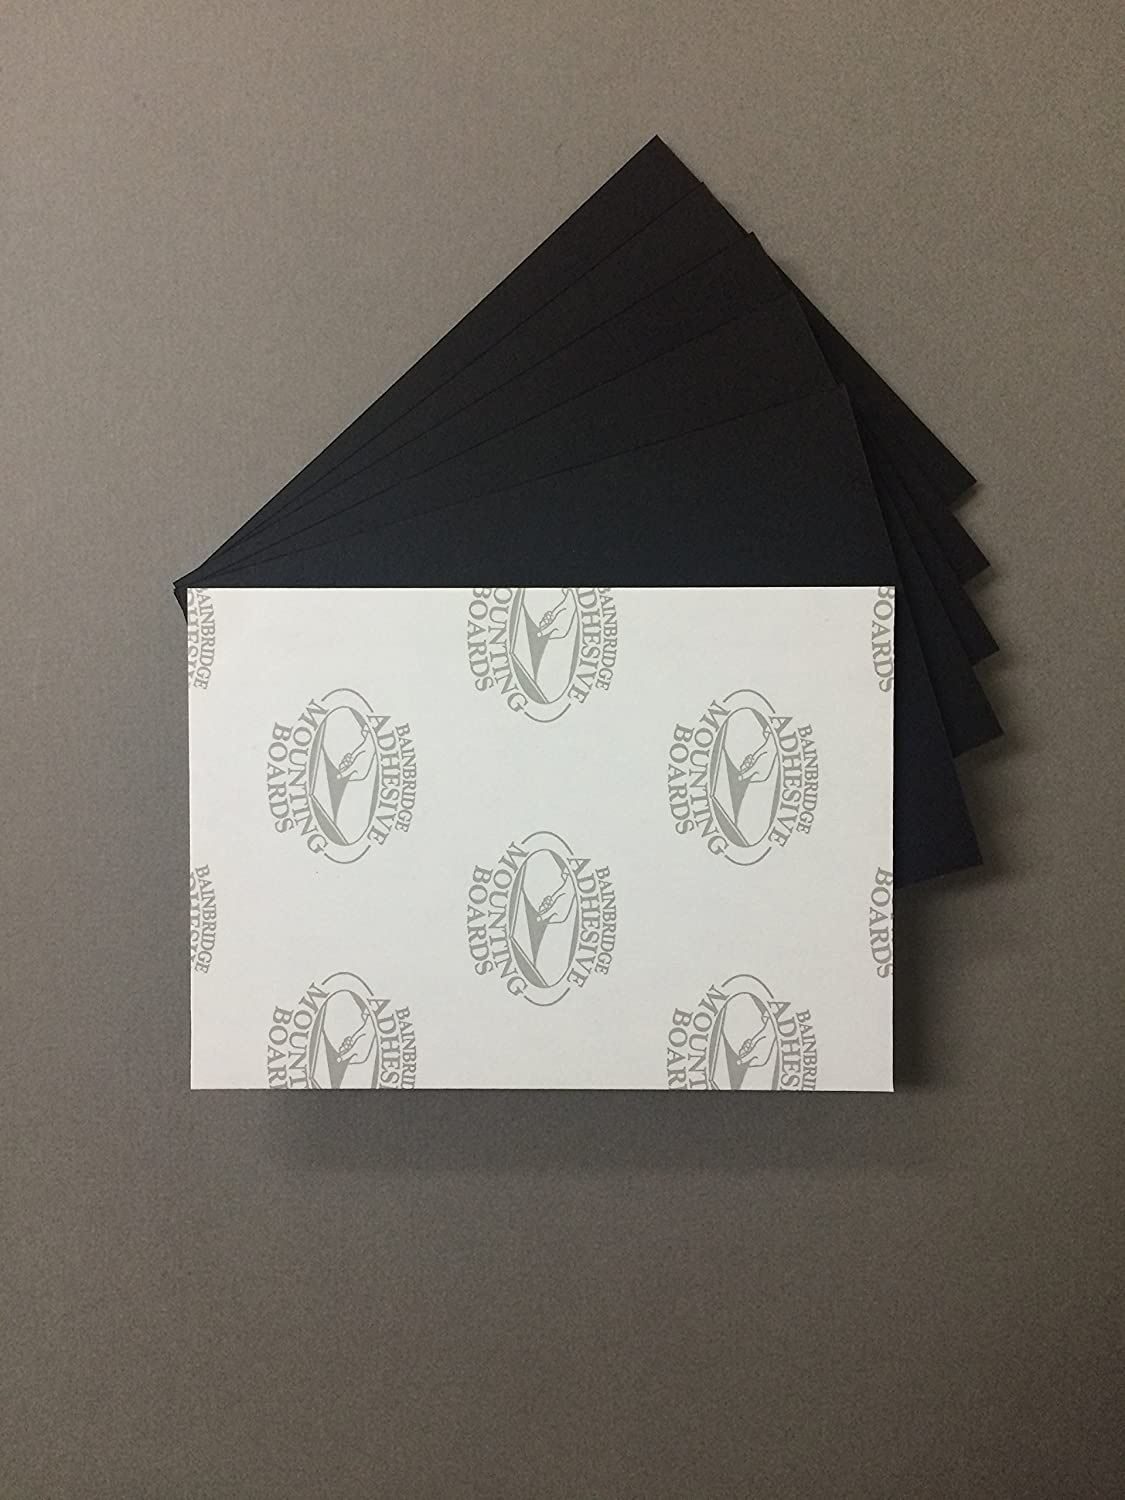 Pack of 10 8x10 3/16 Black Self Adhesive Foam Core Backings Bux1 Picture Matting